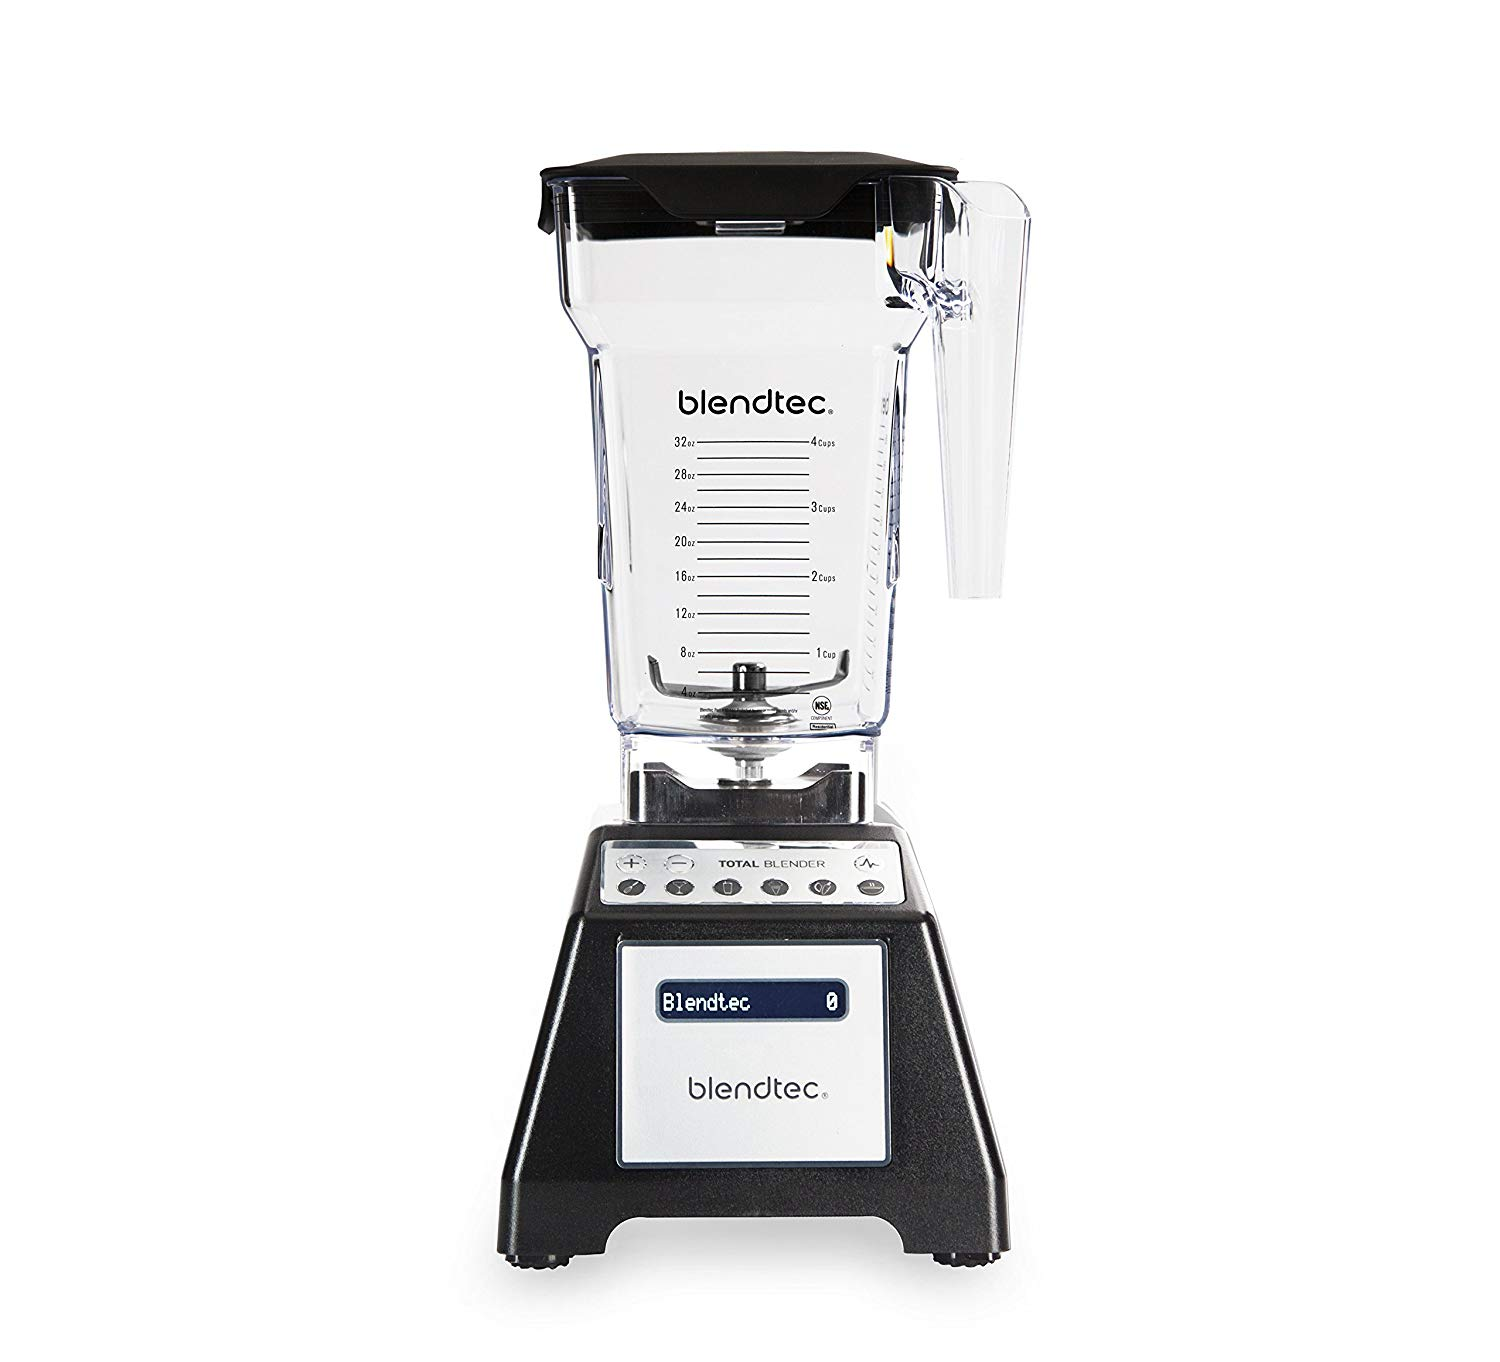 Normally $270, the Blendtec Total Blender Classic is on sale for $199 (Photo via Amazon)